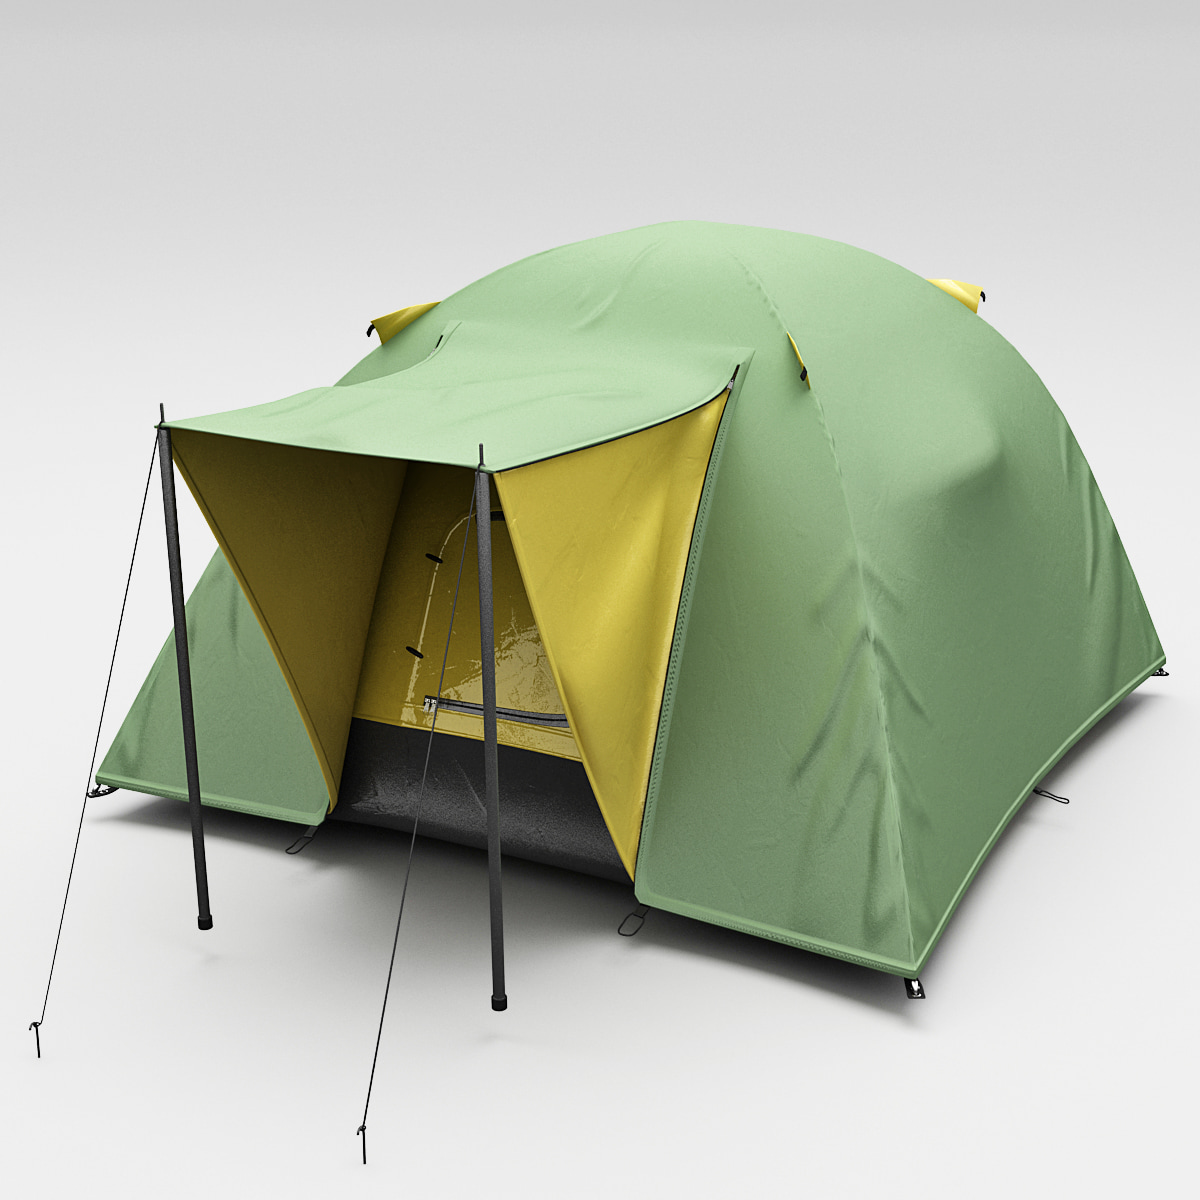 Outwell_Tent_Nevada_3_0000.jpg